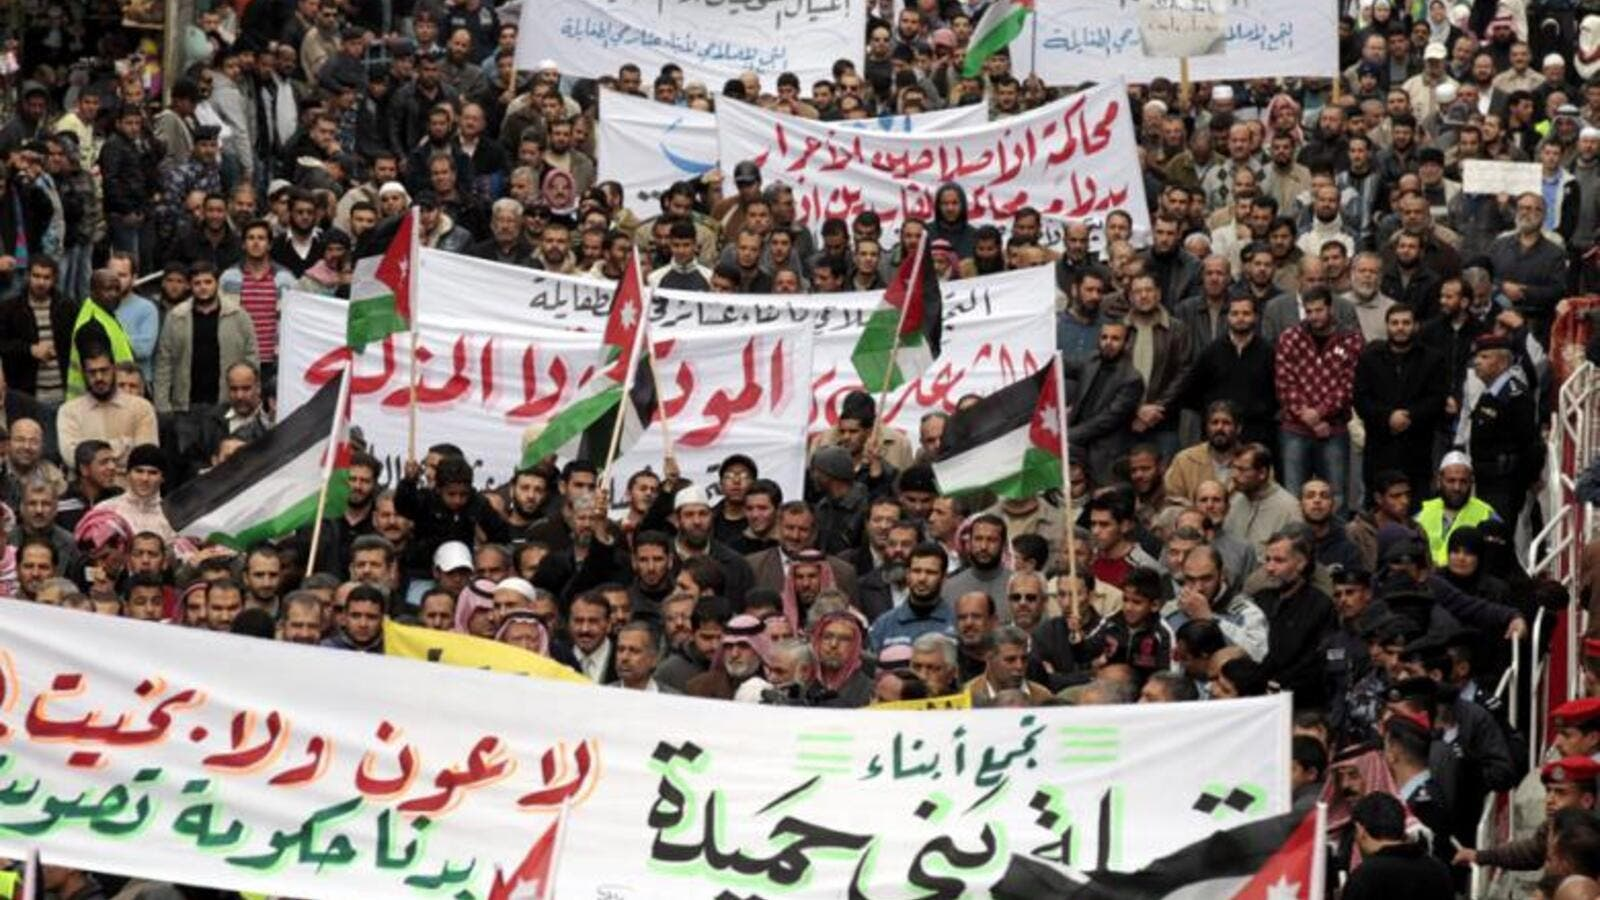 Jordanian Islamic Action Front supporters shouts anti-Government slogans, in Amman, on 18 November 2011, as hundreds of Jordanian protesters mached following Friday noon prayer.